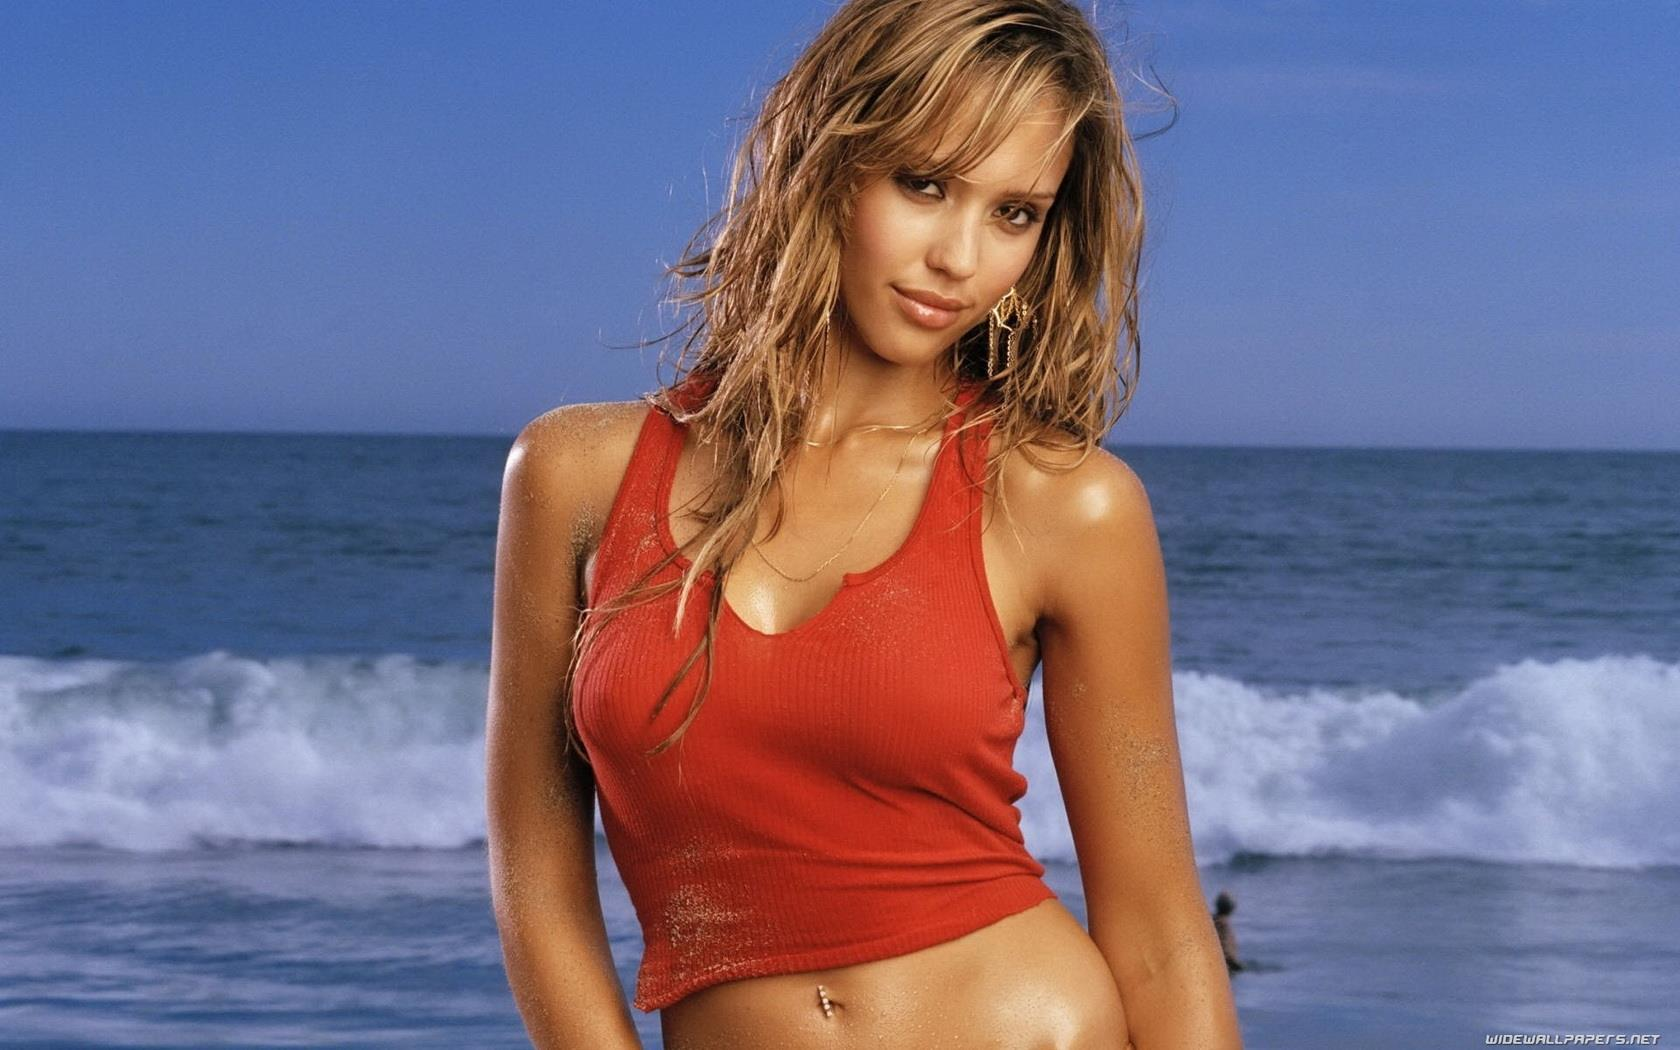 Jessica Alba Sexy Photos Of Jlo. Zoom. Zoom